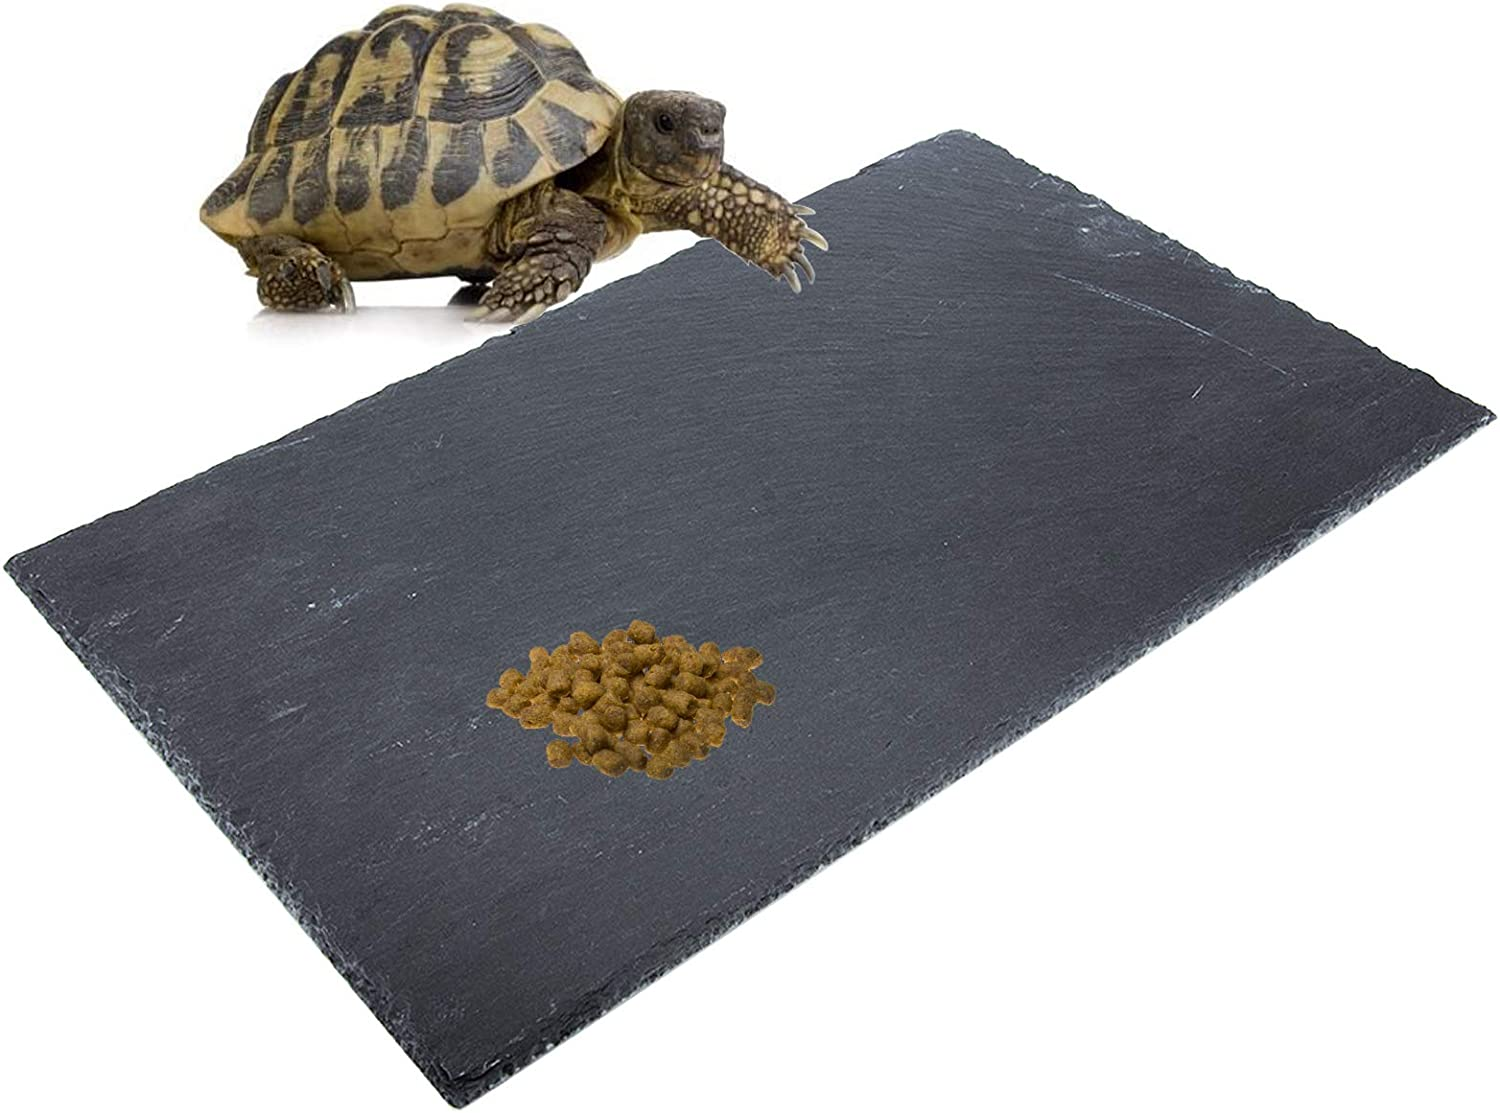 dojobkinb Reptile Basking Platform, Tortoise Feeding Food Dish, Reptile Food Dish Grinding Nail Landscape Habitat Decor for Lizard Bearded Dragon Turtle Crested Gecko Snake